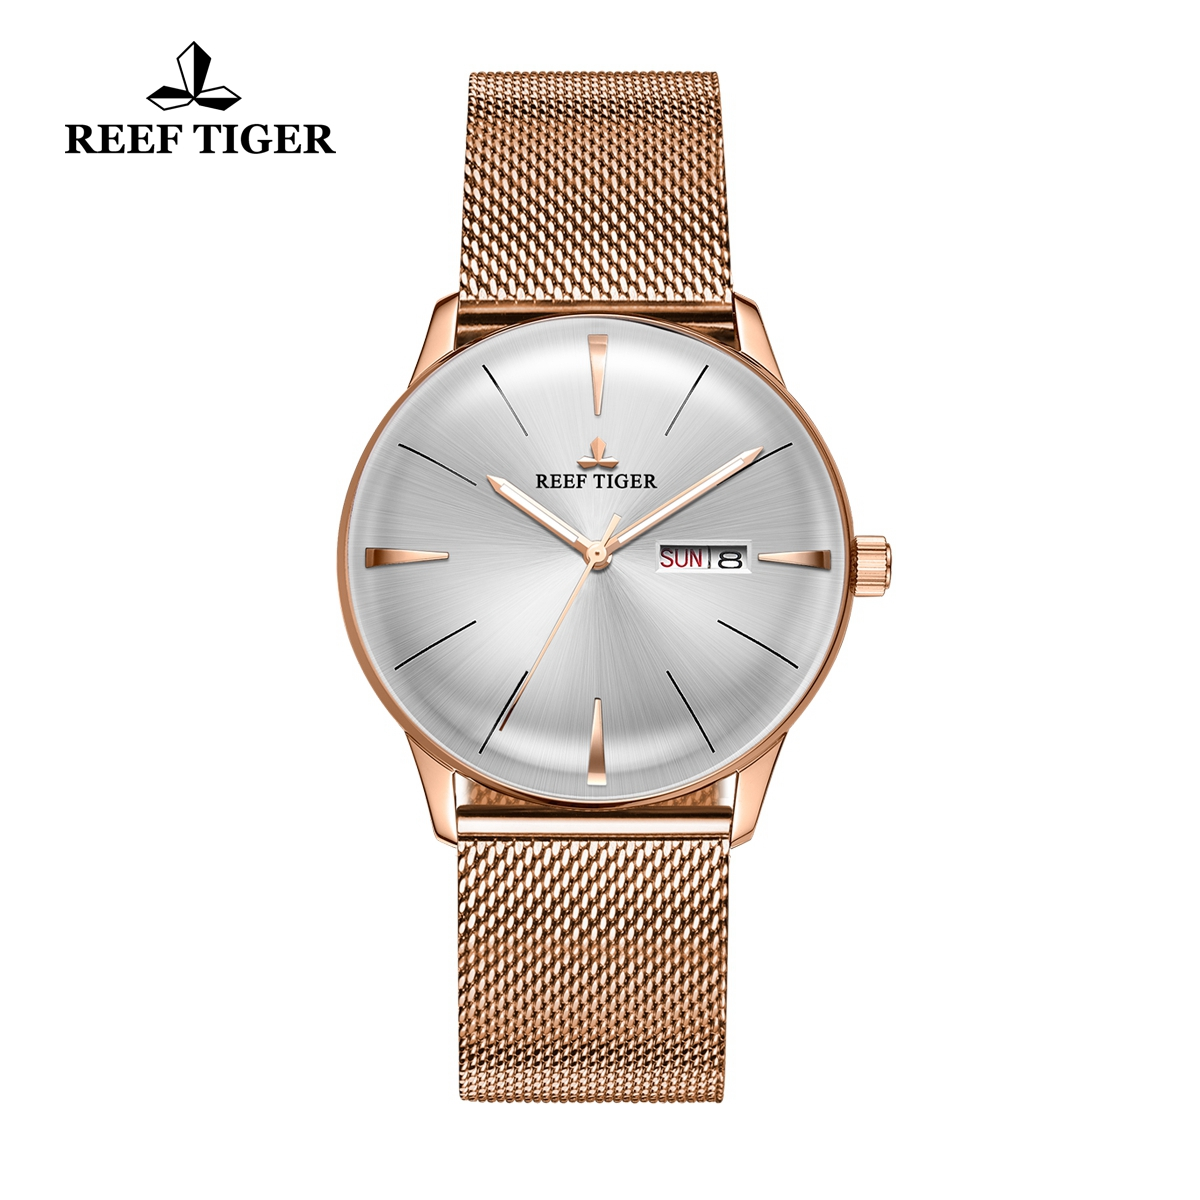 Reef Tiger Classic Heritor Mens Rose Gold Automatic Watch White Dial Watches RGA8238-PWP